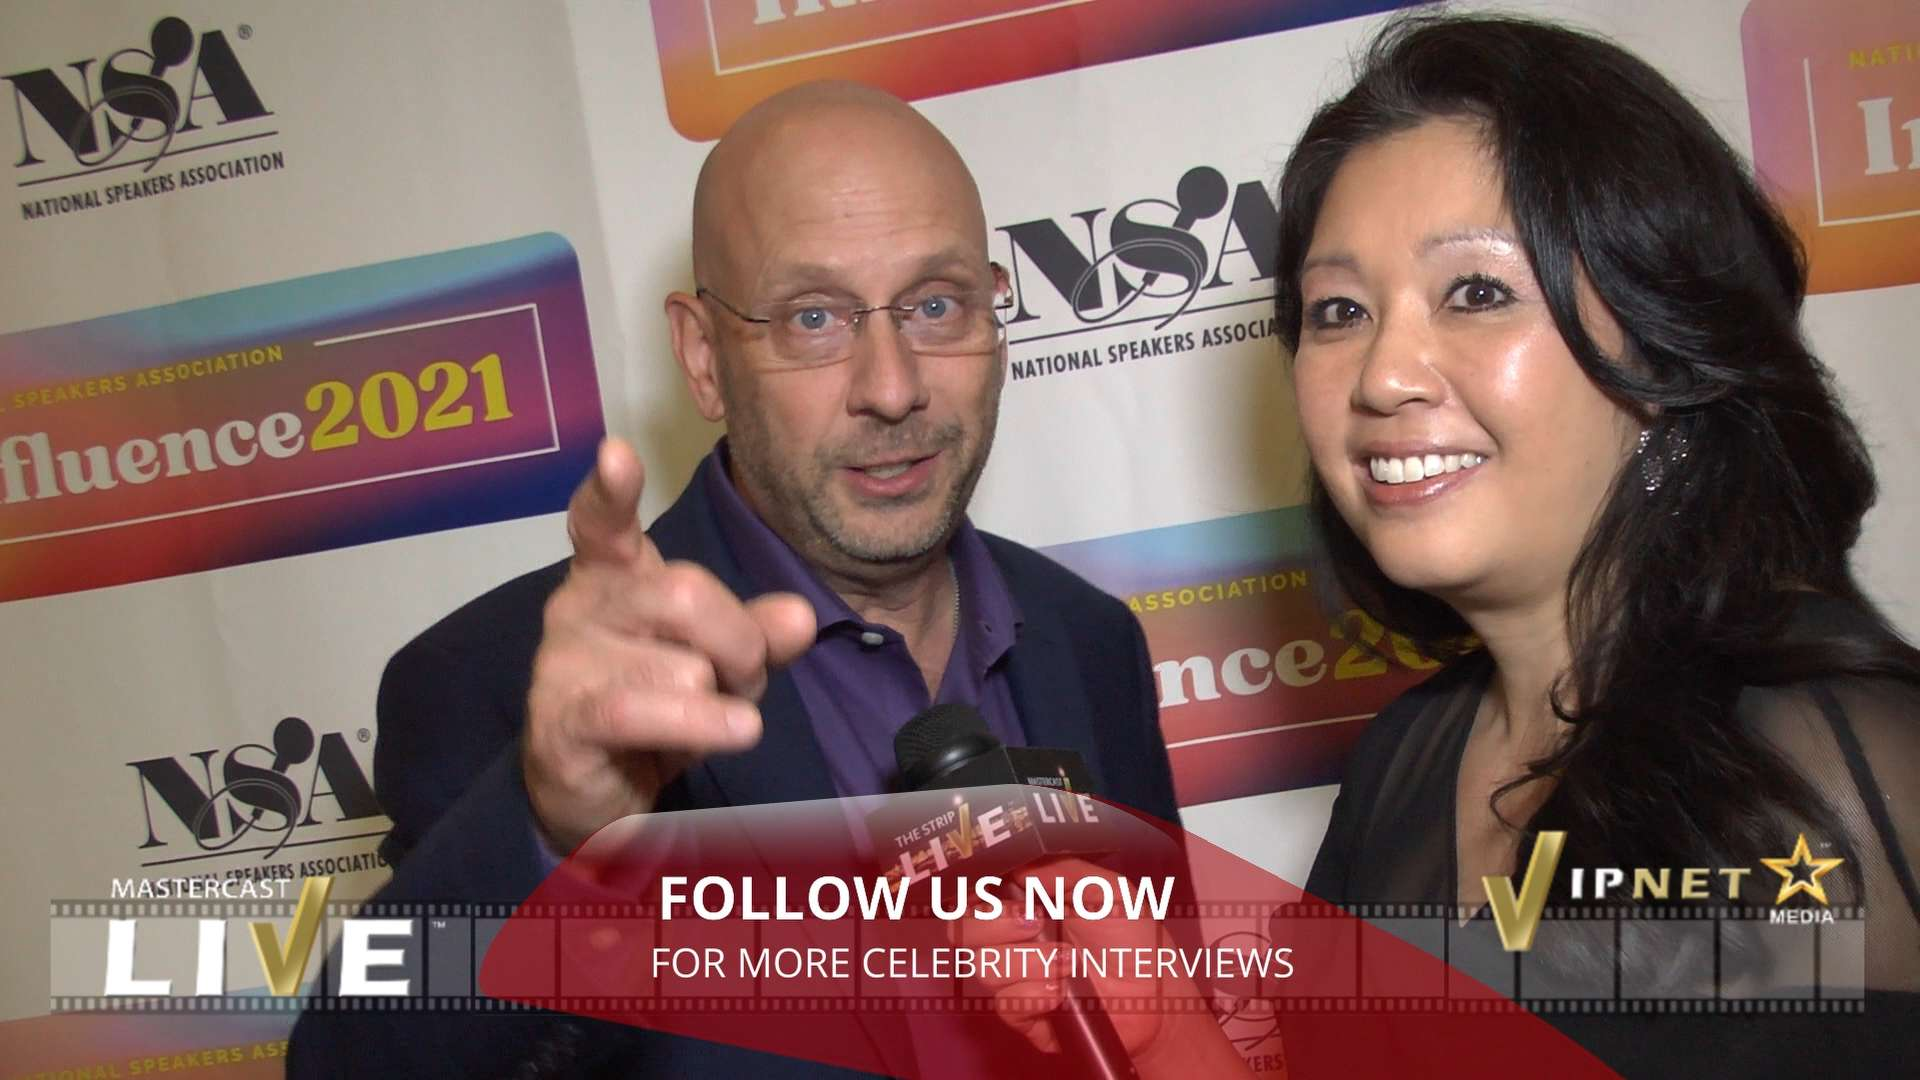 Darren LaCroix showcase on MASTERCAST LIVE (with Maria Ngo and Ray DuGray)